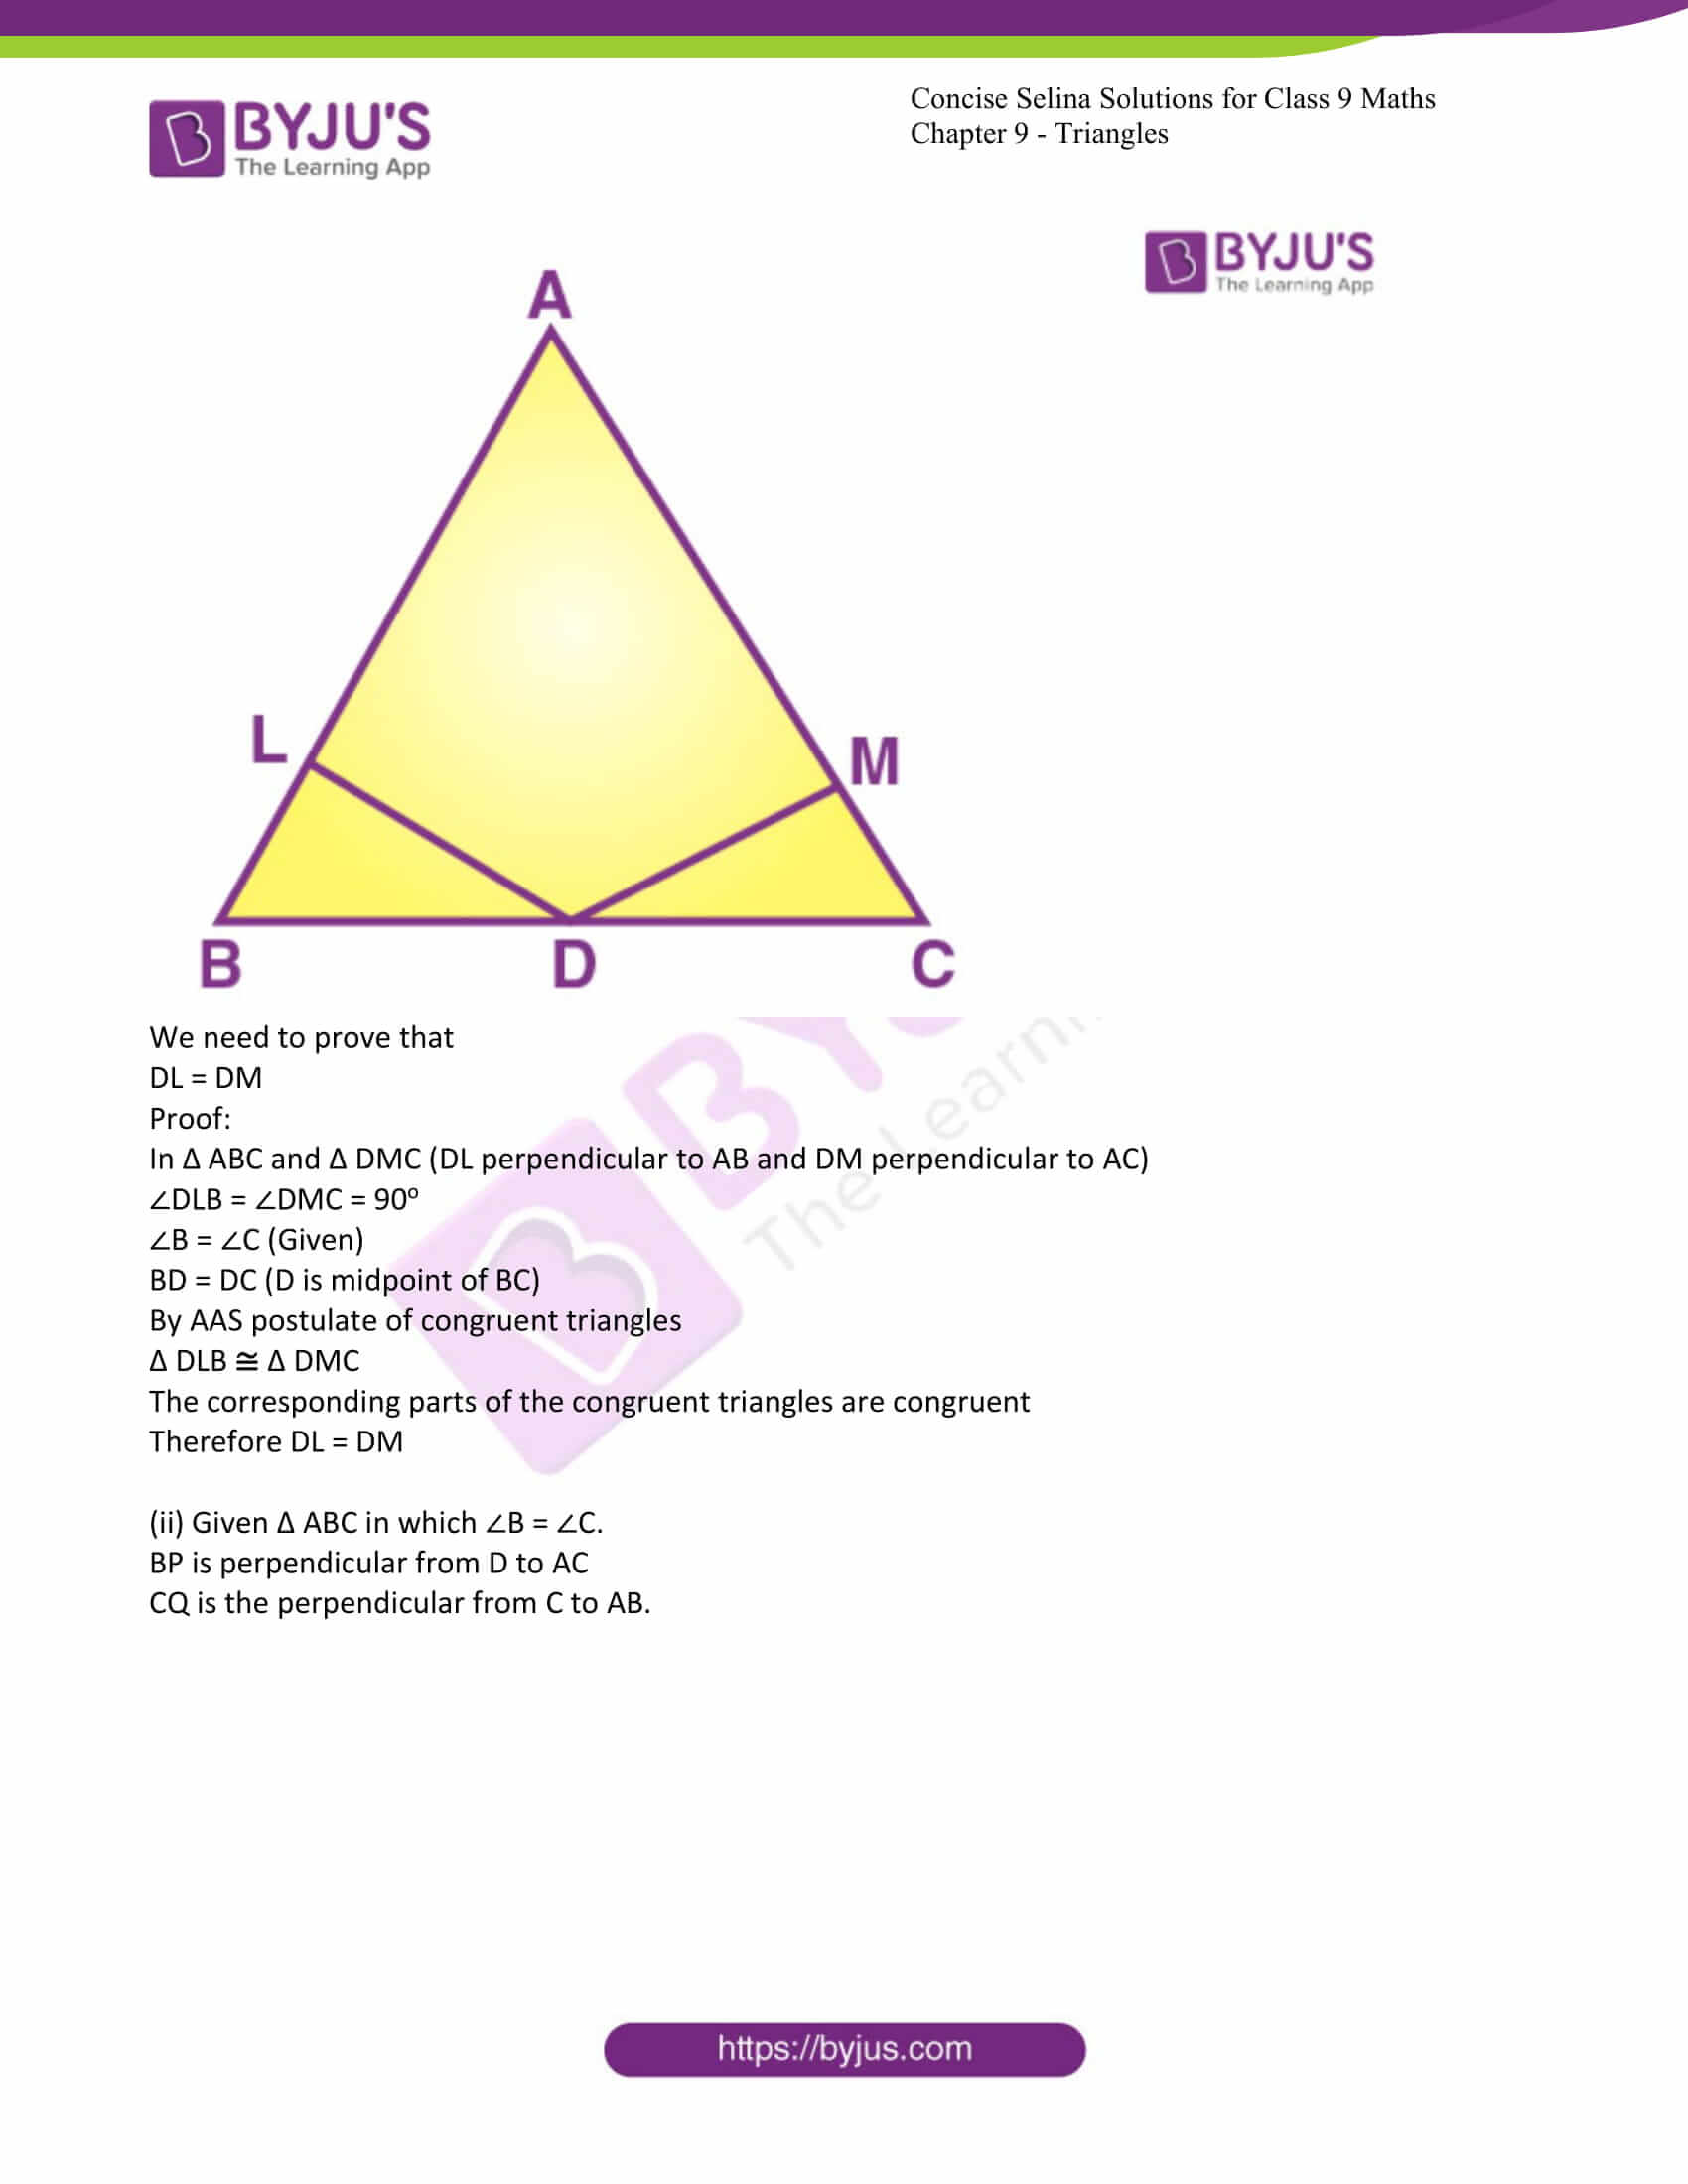 icse class 9 maths may10 selina solutions chapter 9 triangles 09